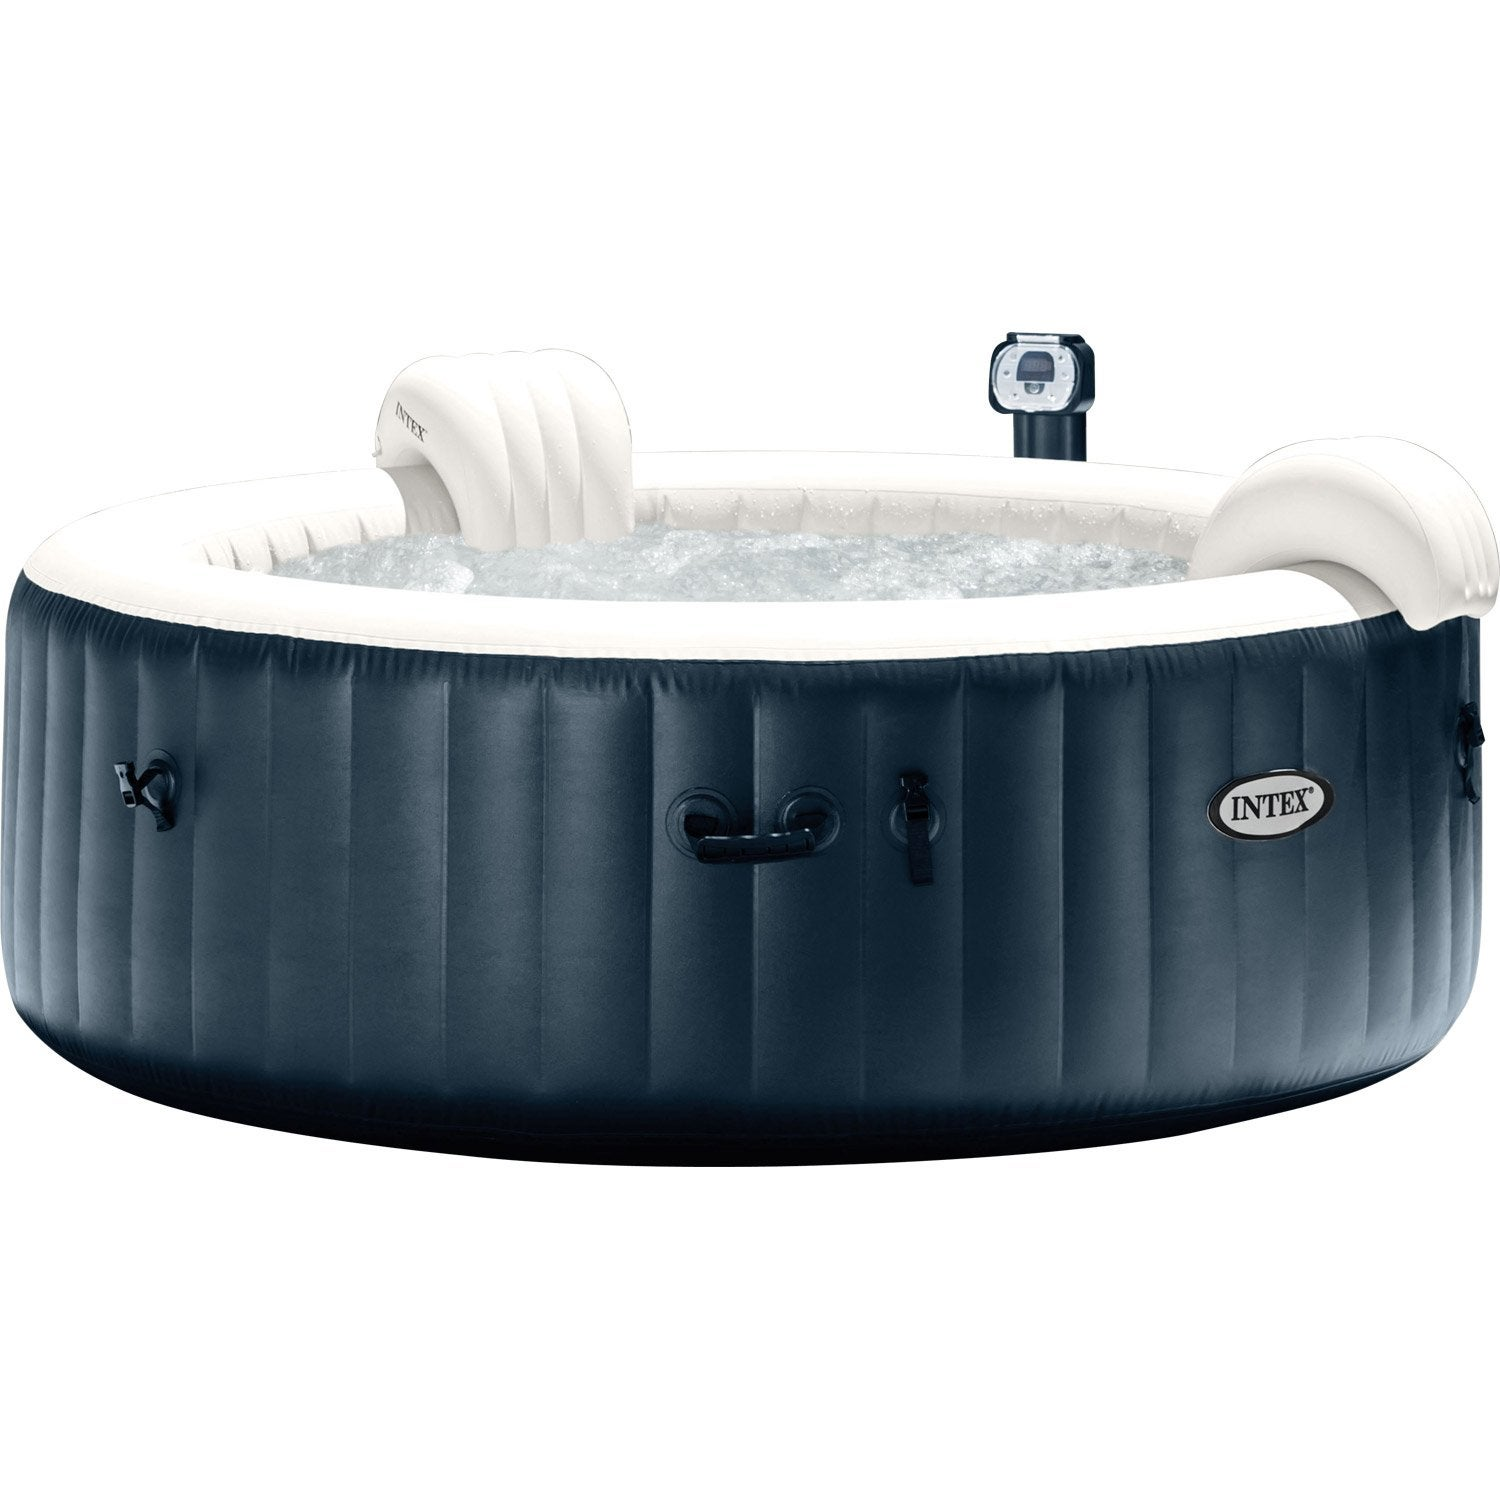 jacuzzi gonflable brico abri pour spa gonflable intex marseille mur incroyable abri piscine. Black Bedroom Furniture Sets. Home Design Ideas